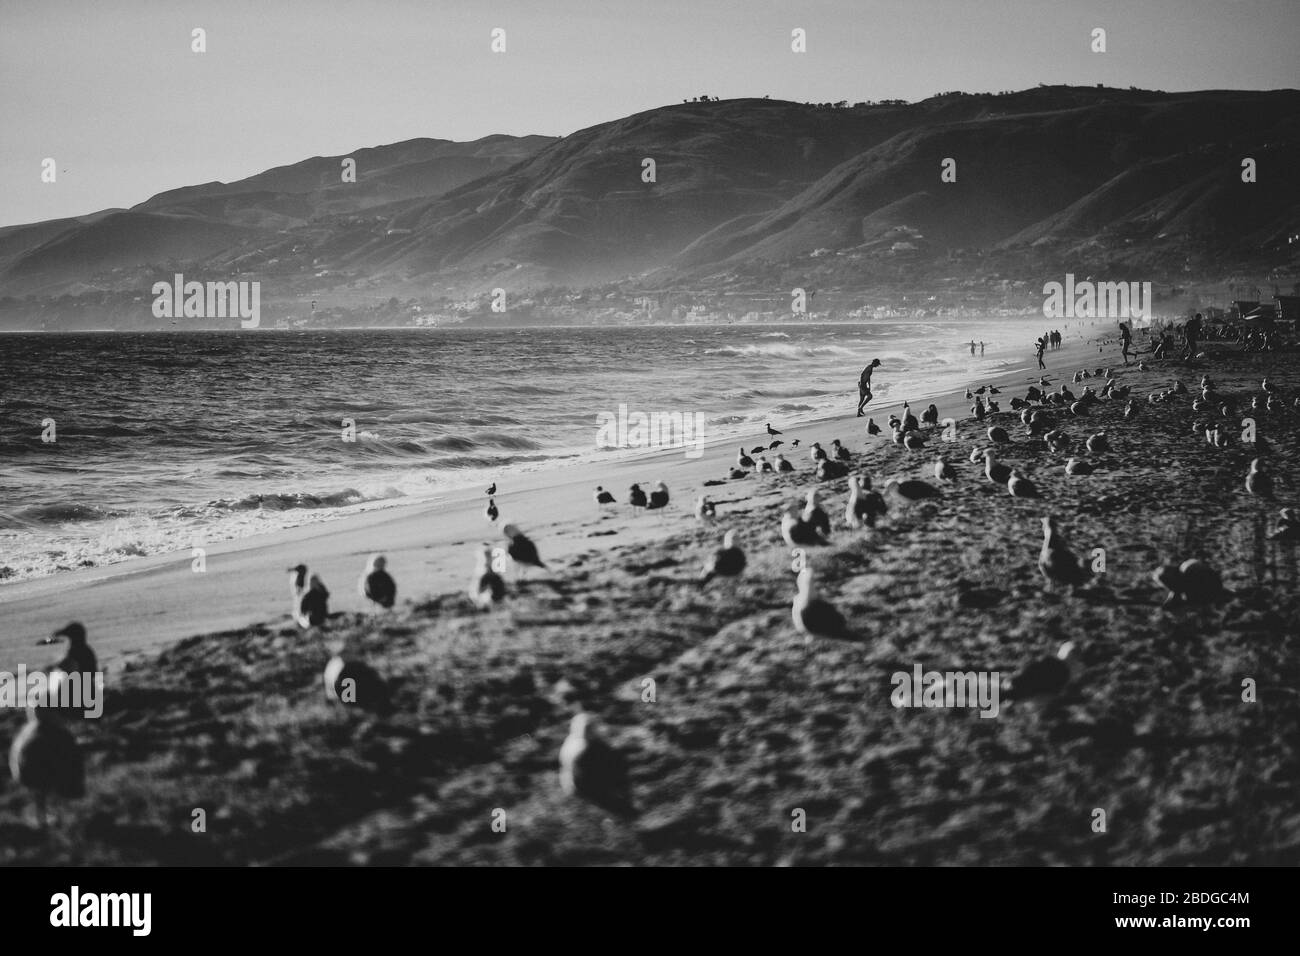 General Views in Back and White of Zuma Beach on 07/09/2019 in Malibu. .Picture by Julie Edwards Stock Photo